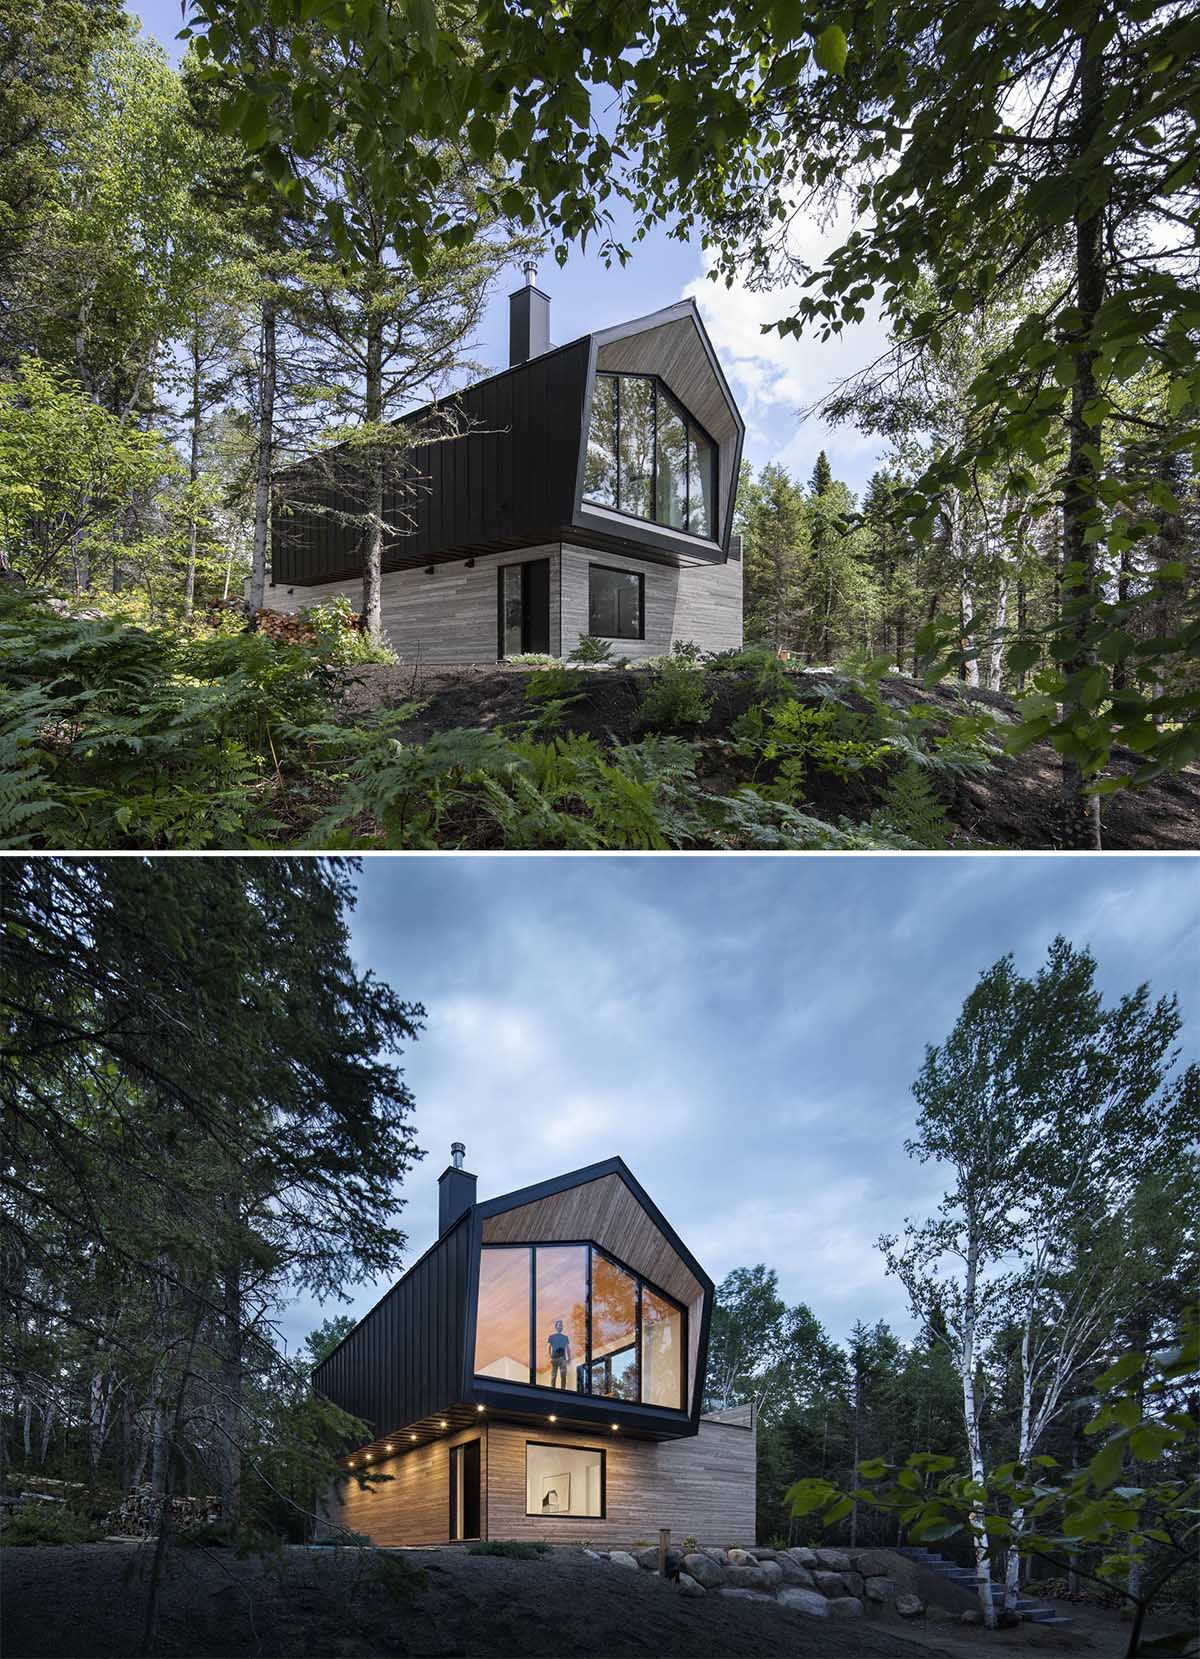 A modern home with a black metal and wood exterior.